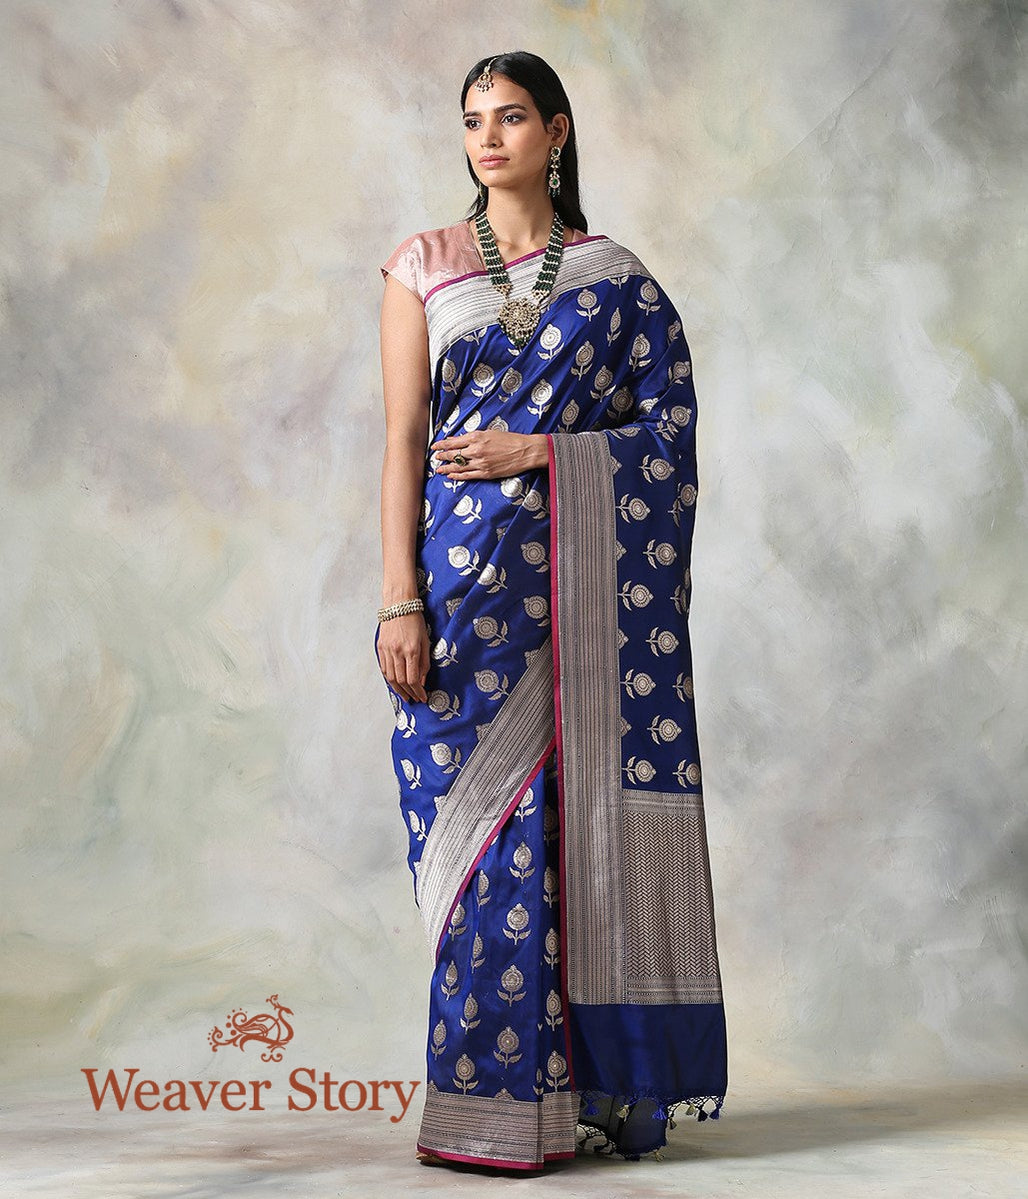 Handwoven Blue Katan Silk Saree with Floral Booti